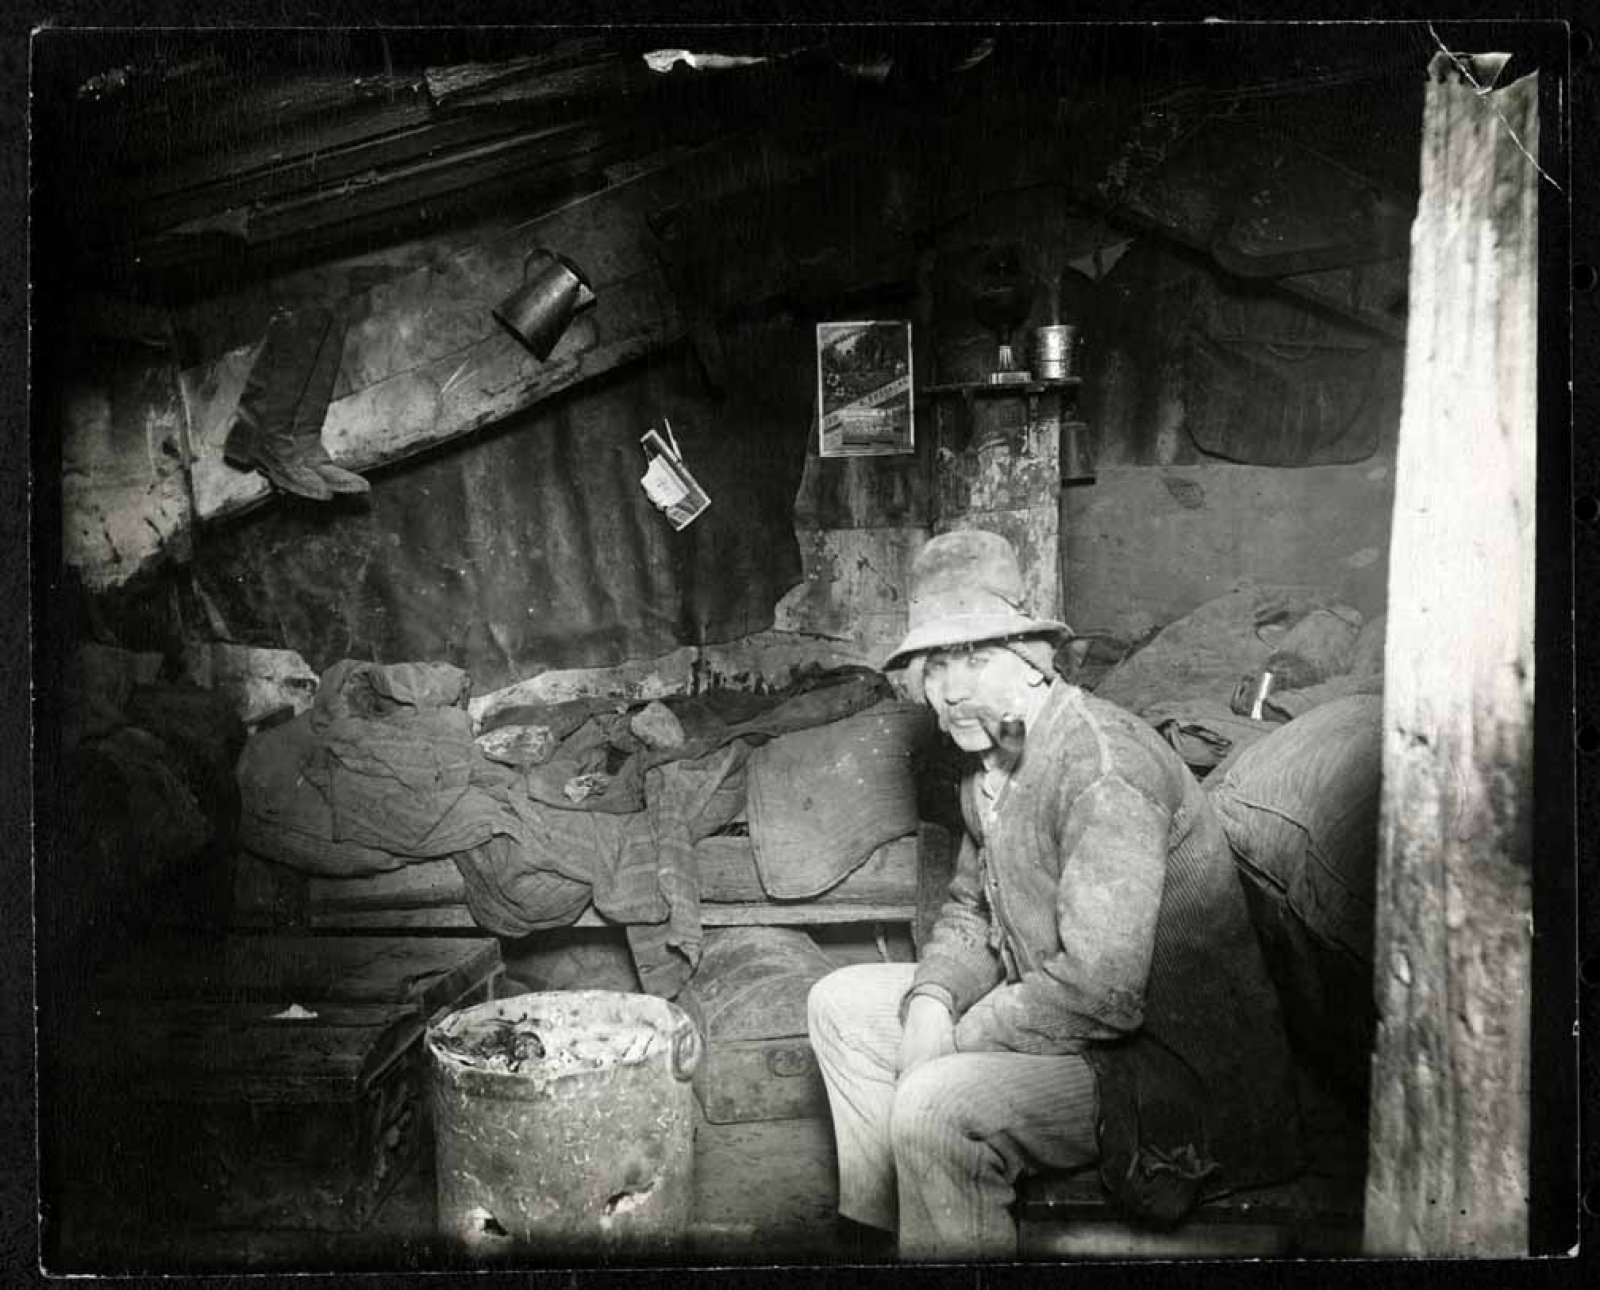 An Italian Home under a Dump, 1892 / Jacob Riis / Museum of the City of New York